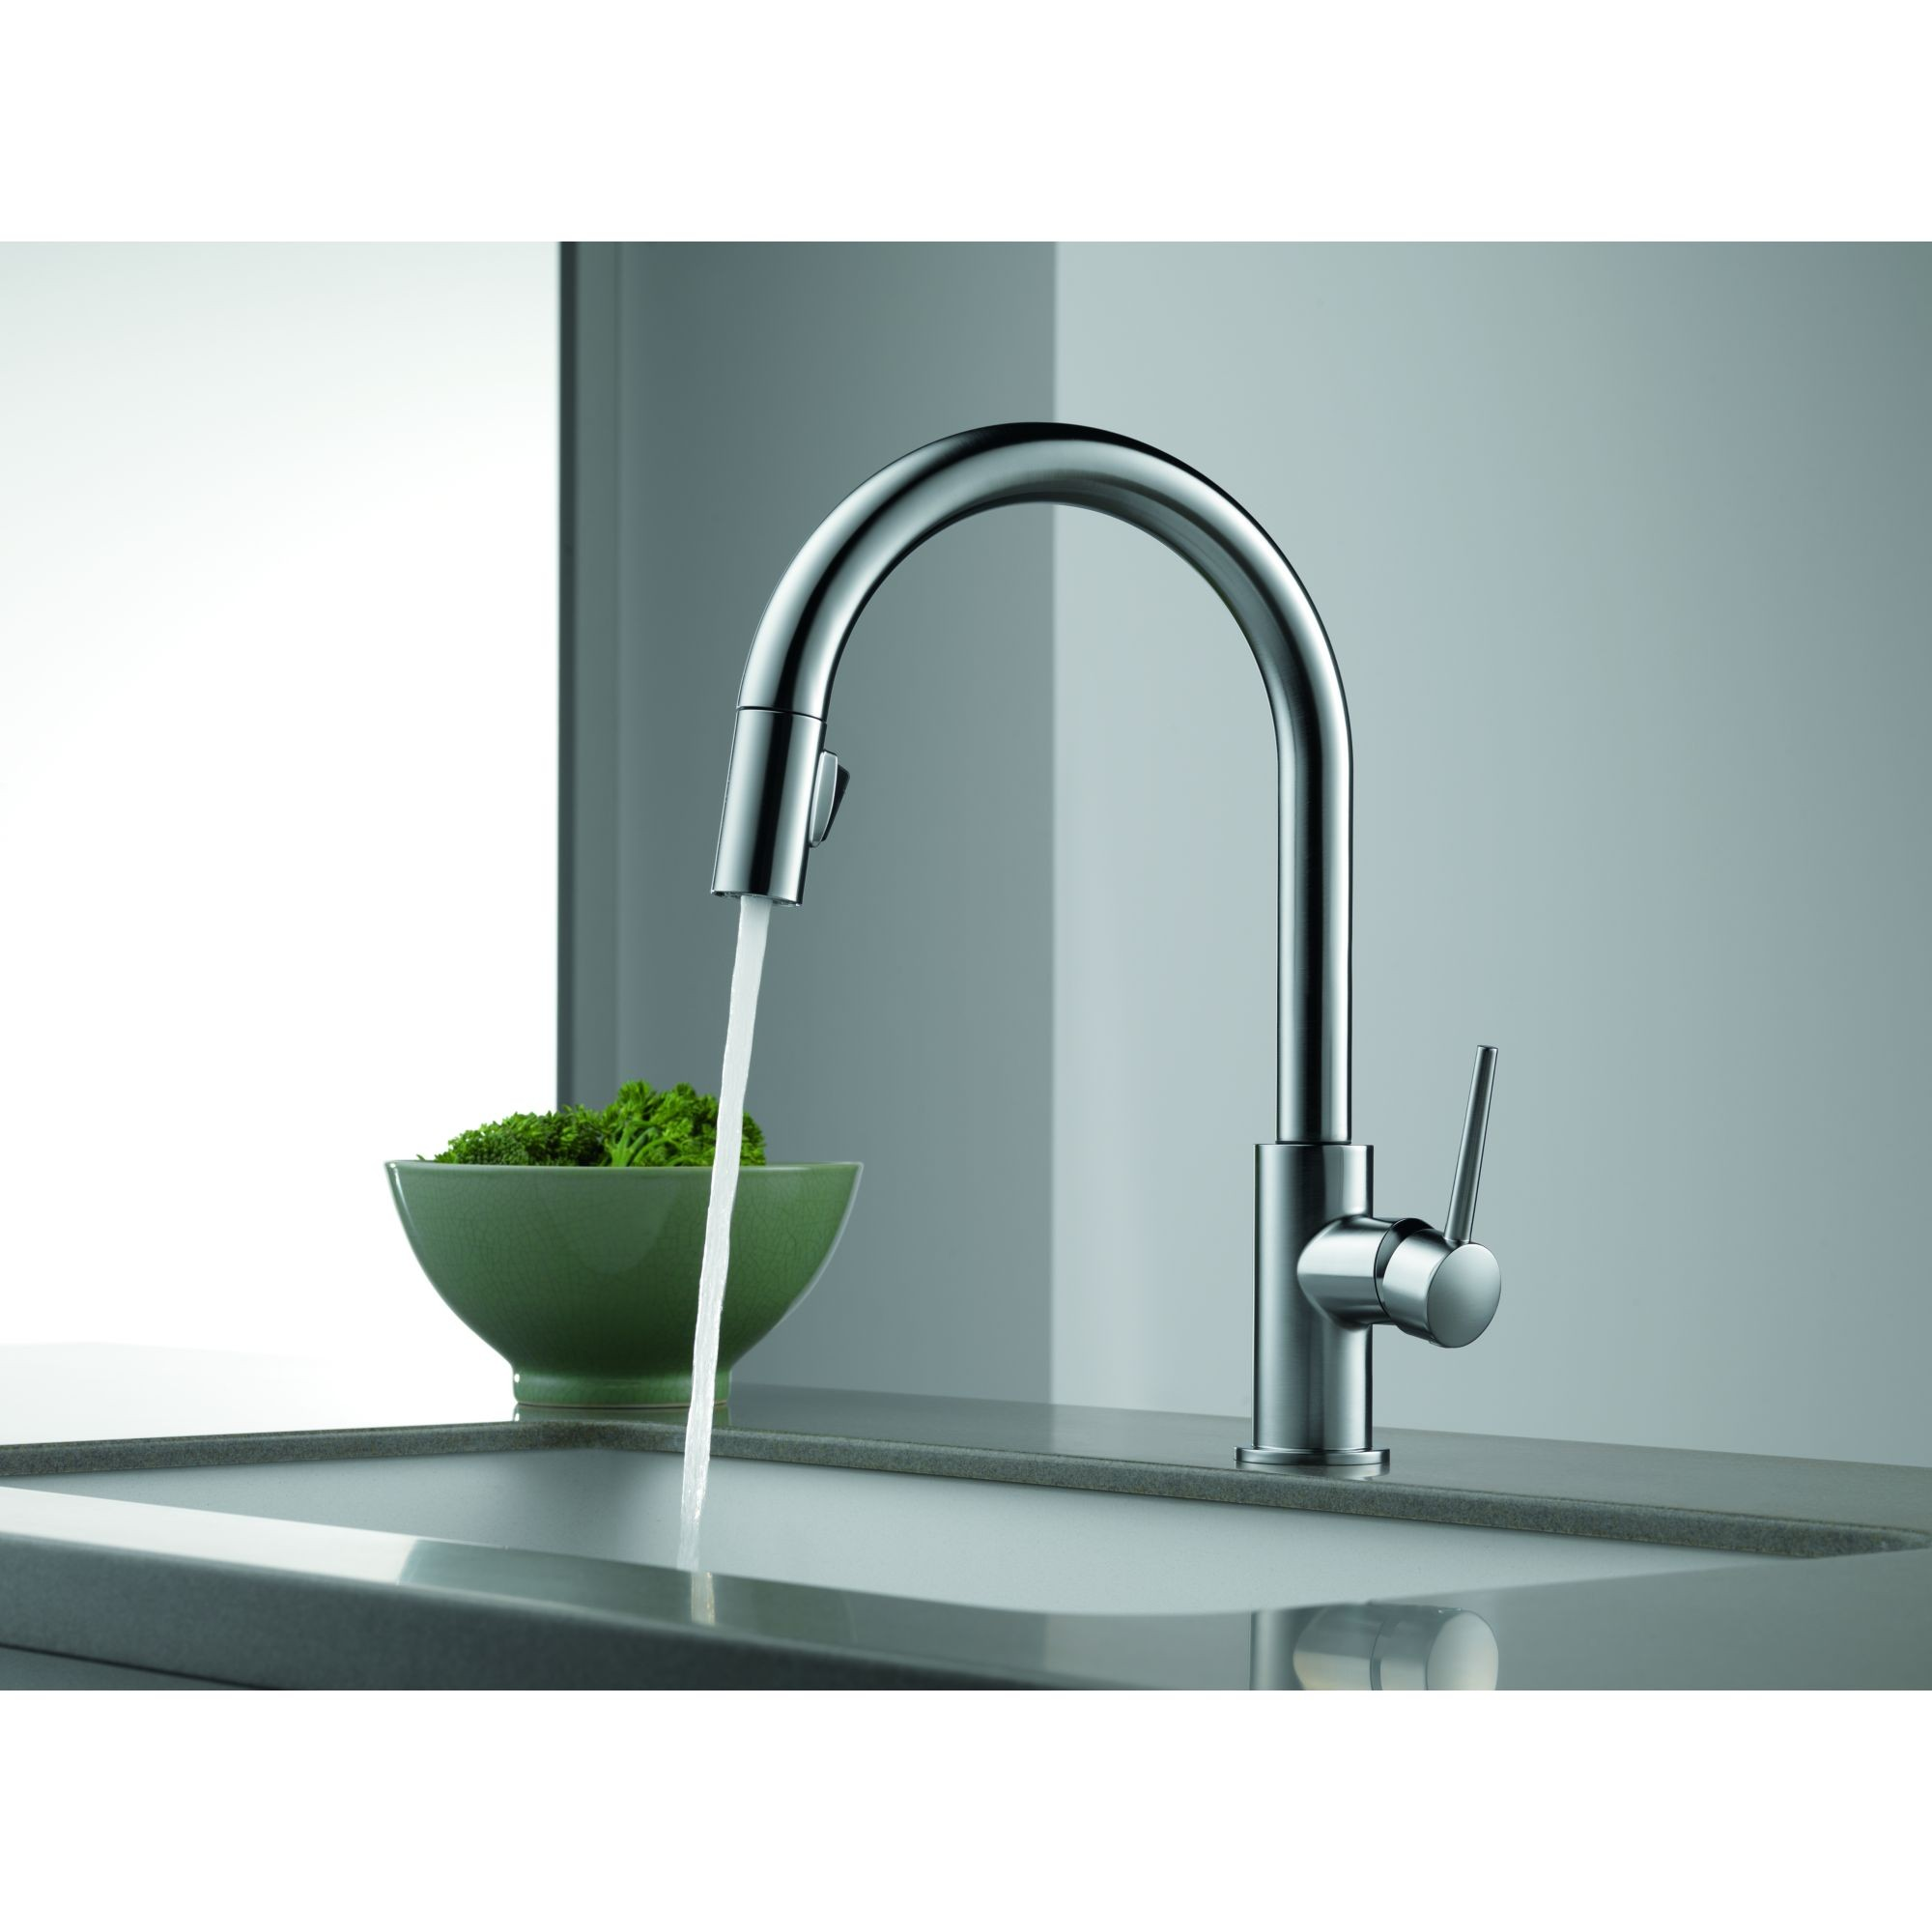 Types Of Kitchen Faucet Stems